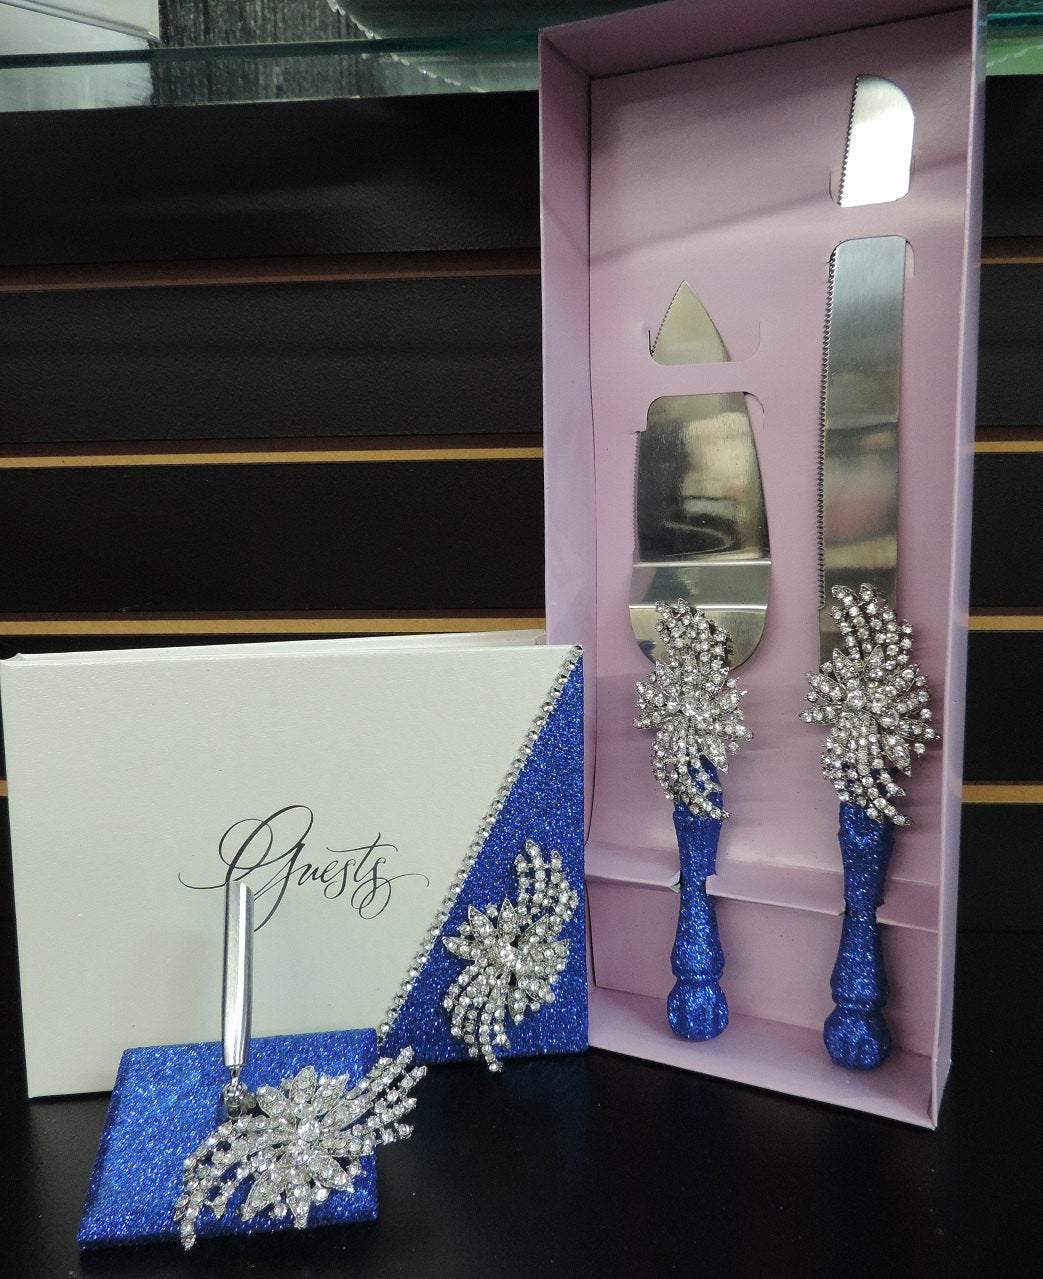 Royal Blue Glitter Three Piece Wedding Set - Guestbook, Pen, Knife & Server Set